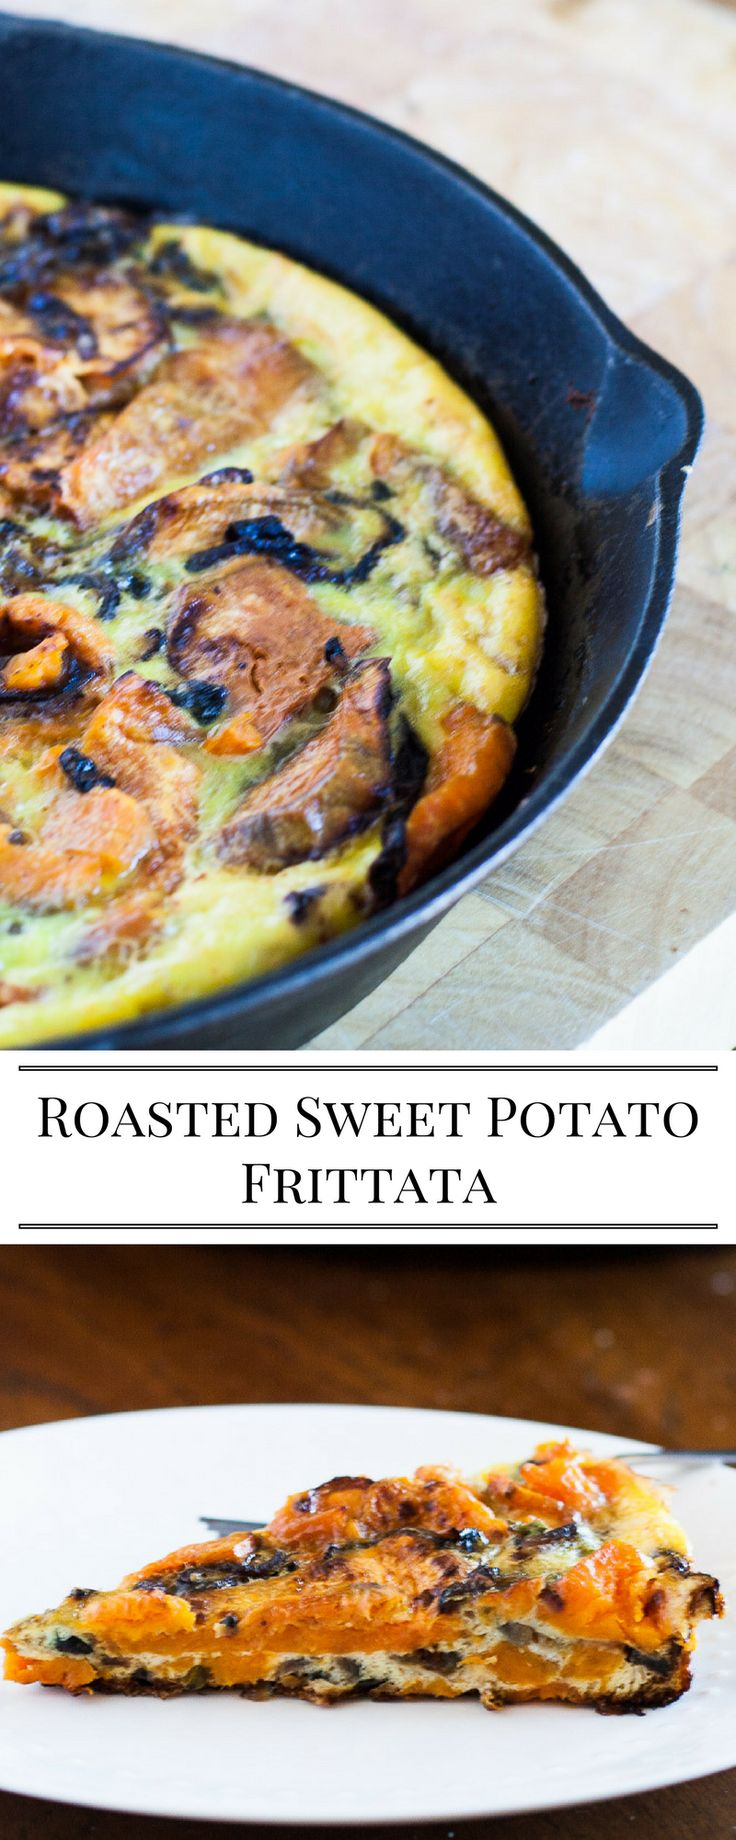 This dairy free Frittata is packed full of roasted sweet potatoes.  This can be made ahead and served at room temperature.  Roasted Sweet Potato Frittata